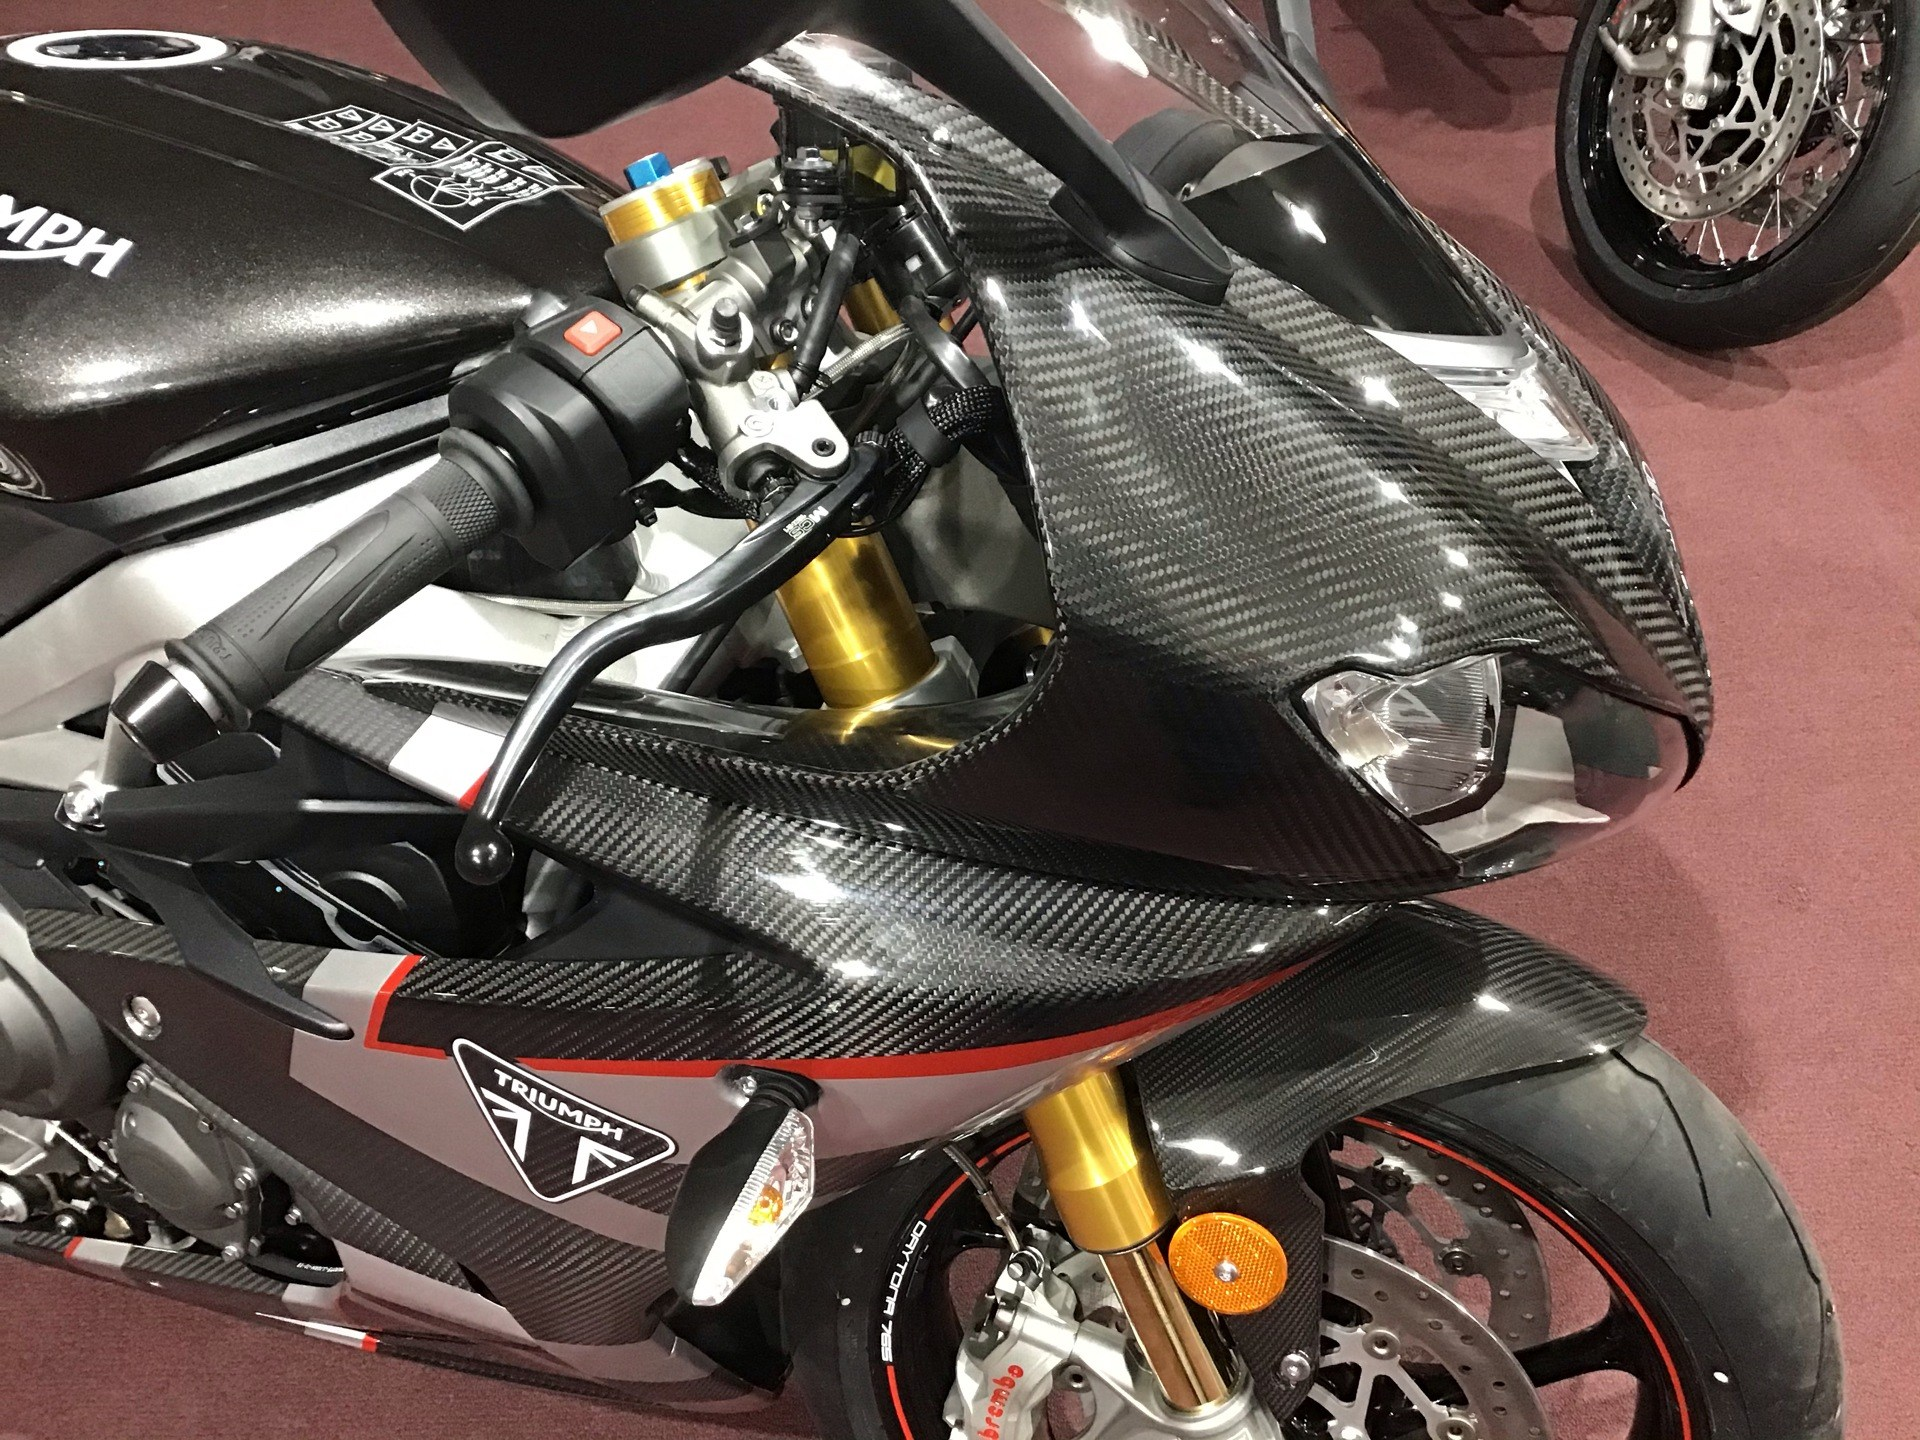 2020 Triumph Daytona Moto2 765 Limited Edition in Belle Plaine, Minnesota - Photo 3